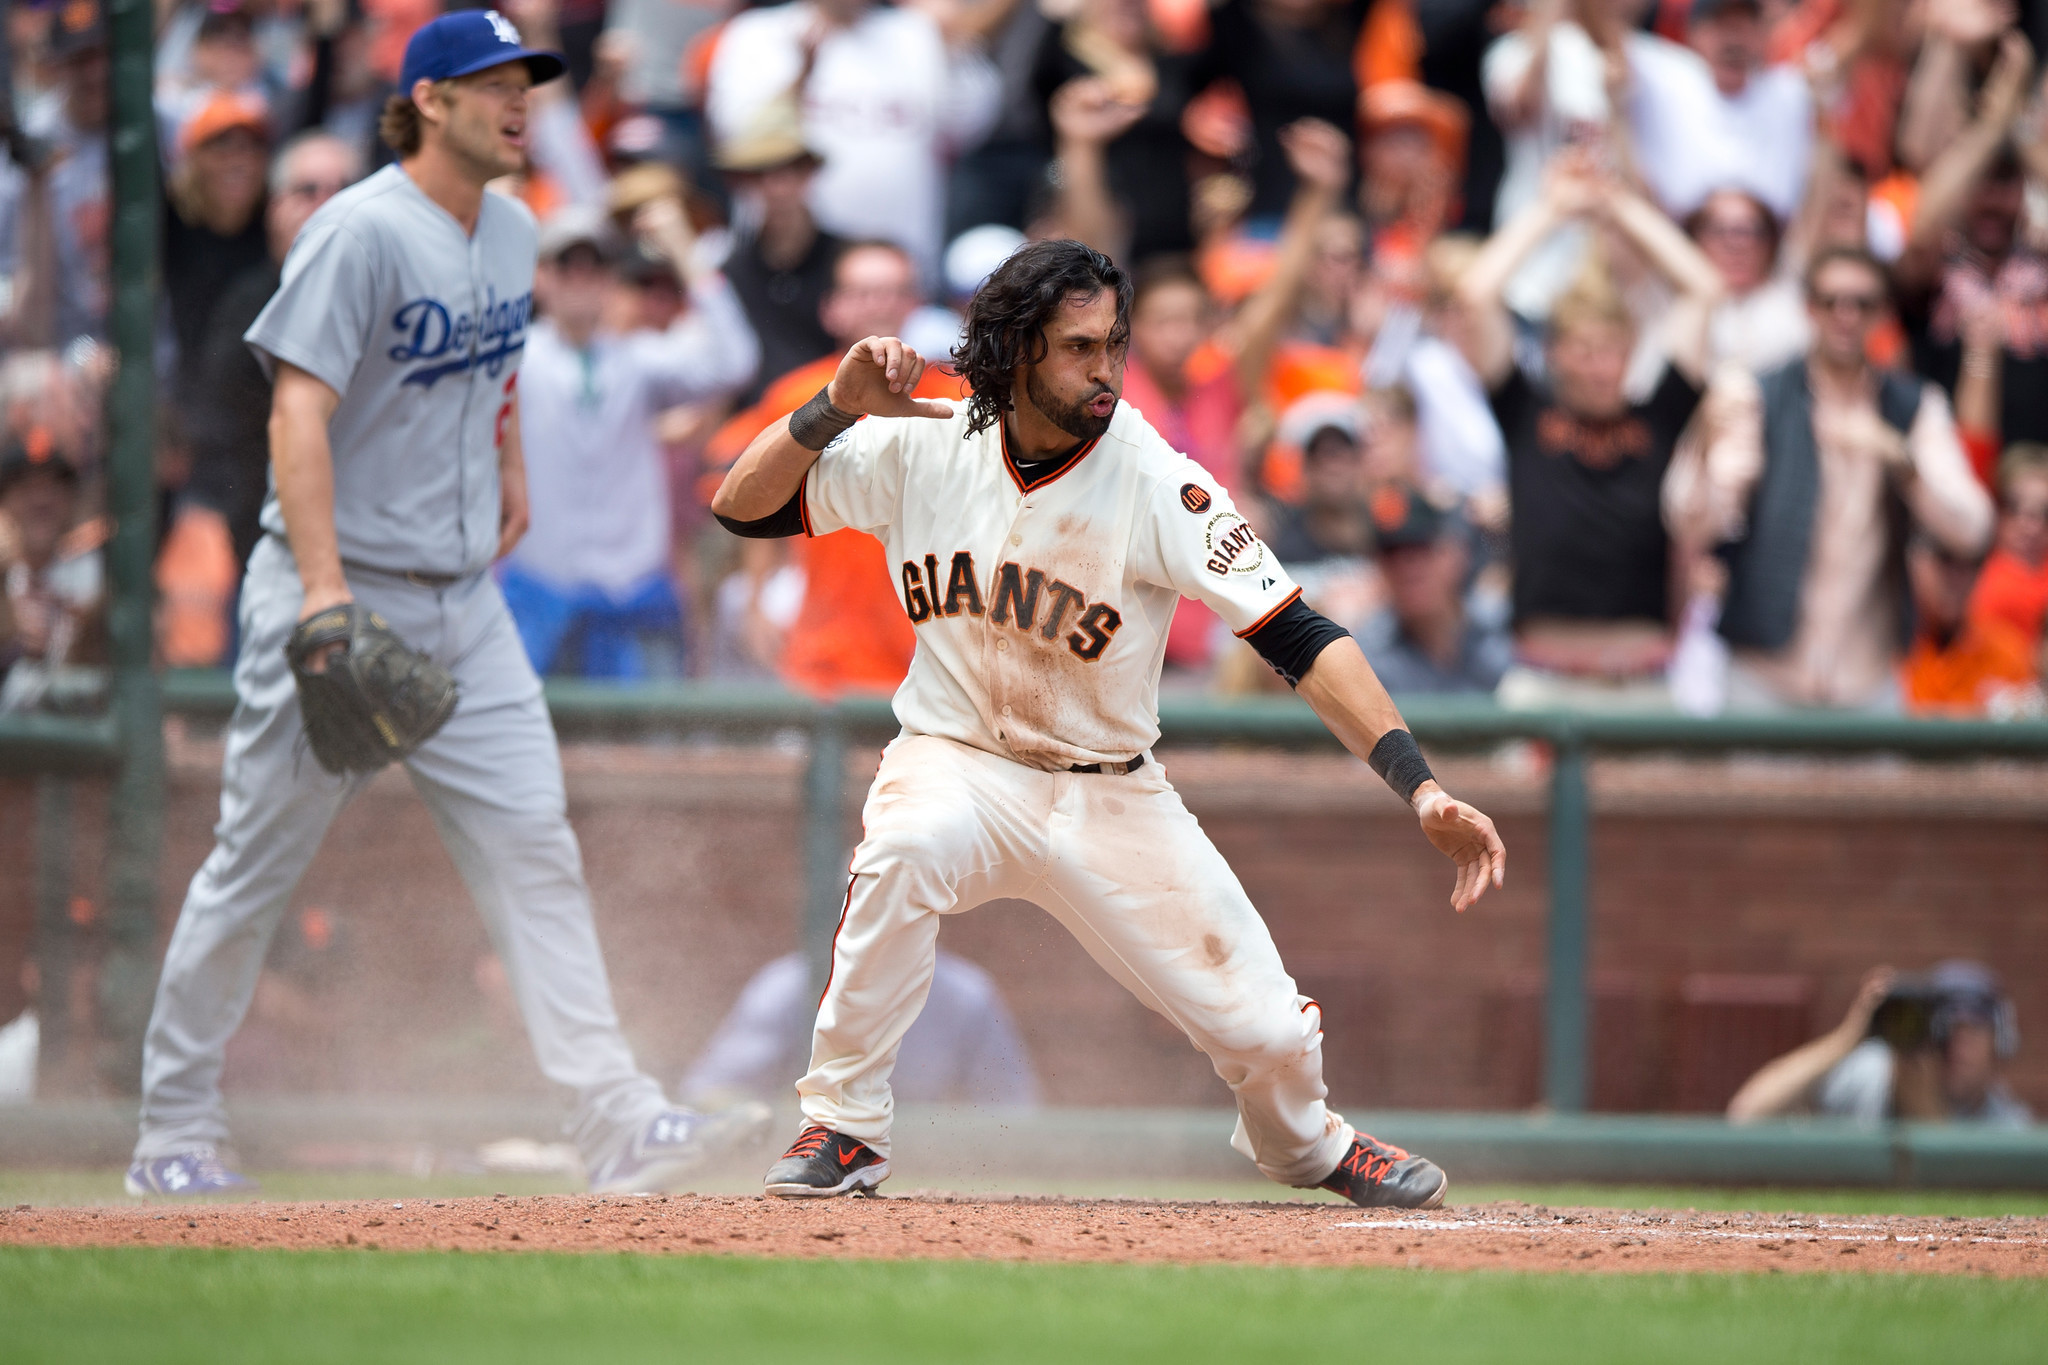 Bal-orioles-free-agency-reset-what-they-need-and-who-s-left-on-the-market-20170103